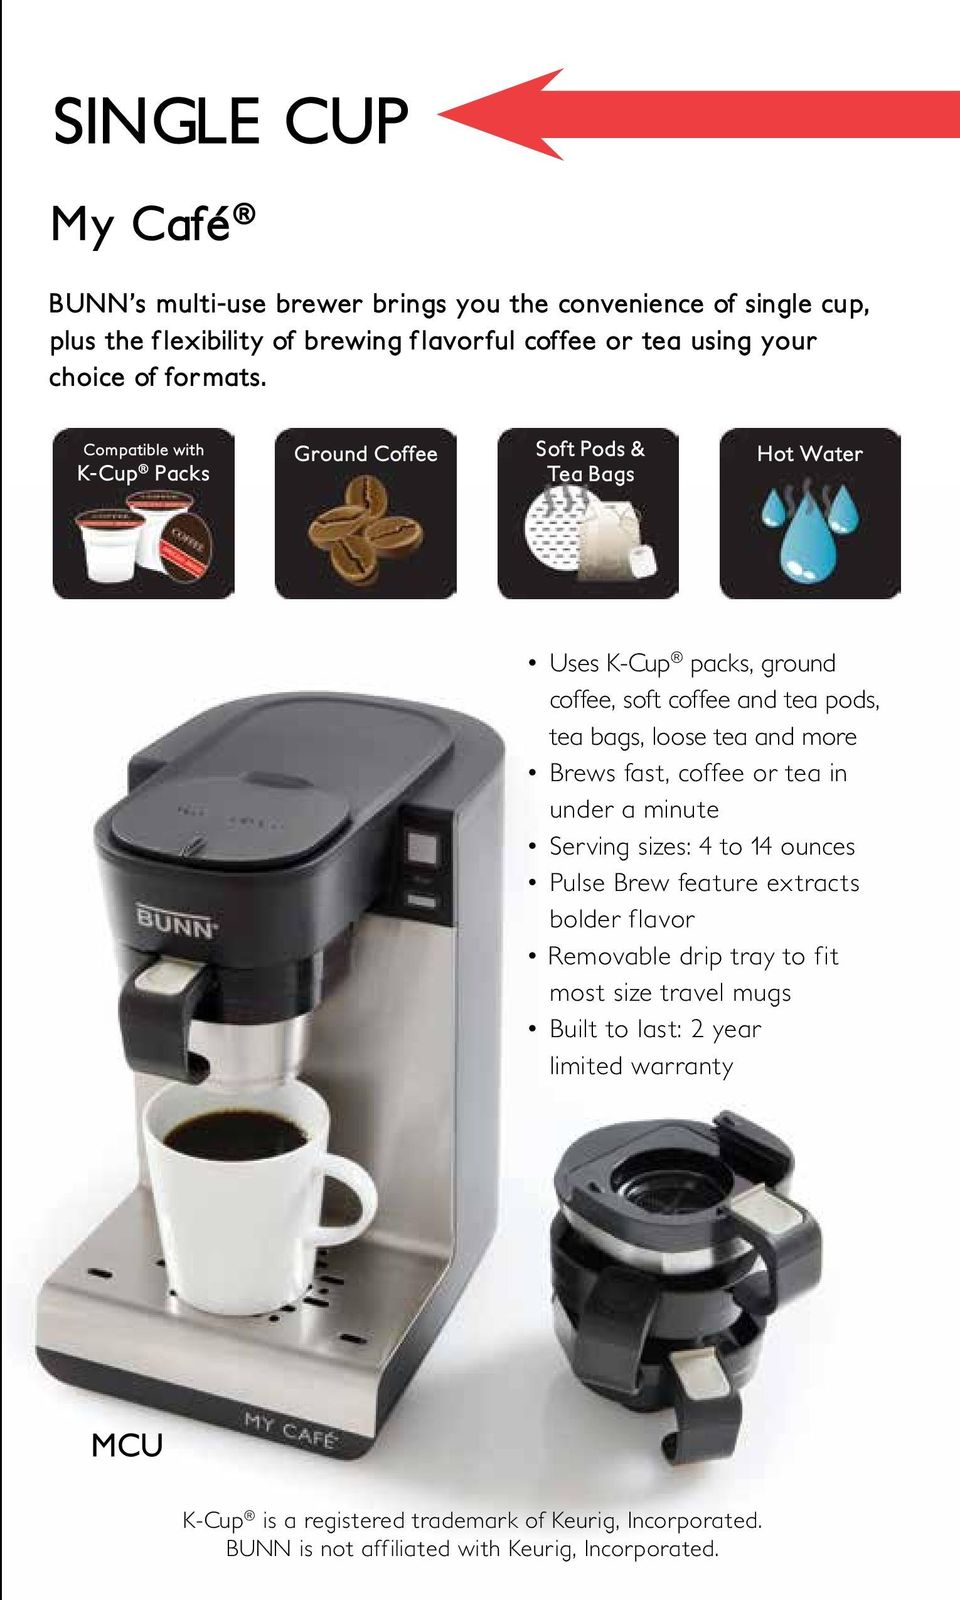 Superior Quality Temperature Bunn Machines Brew At A Consistent Bxb Wiring Diagram Compatible With K Cup Packs Ground Coffee Soft Pods Tea Bags Hot Water Uses